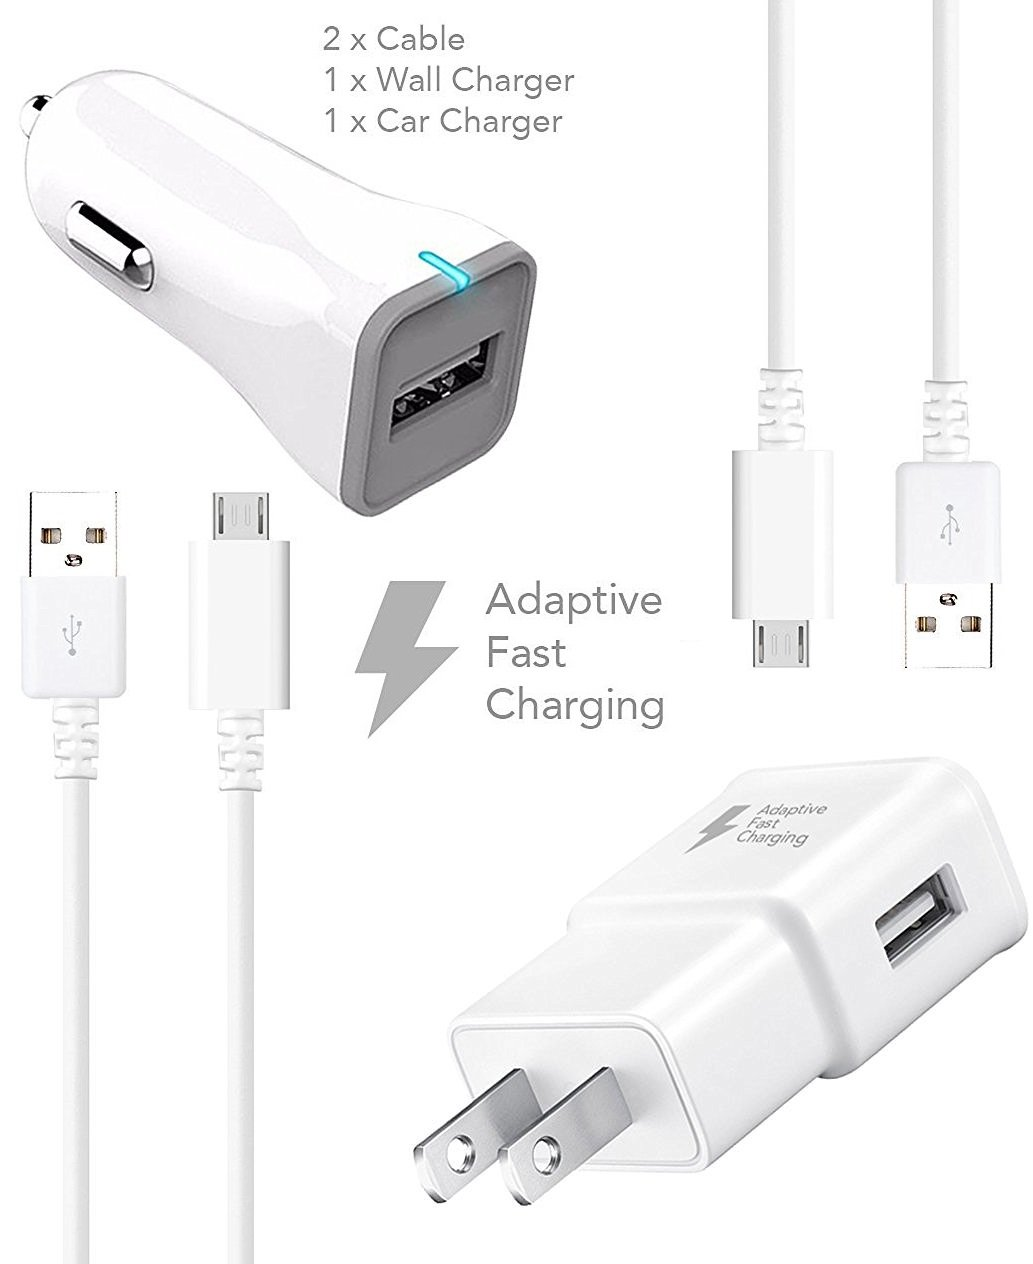 Samsung Galaxy S7 S7 Edge Adaptive Fast Charger Micro USB 2.0 Cable Kit by Ixir - {Wall Charger + Car Charger + 2 Cable} True Digital Adaptive Fast Charging by Ixir